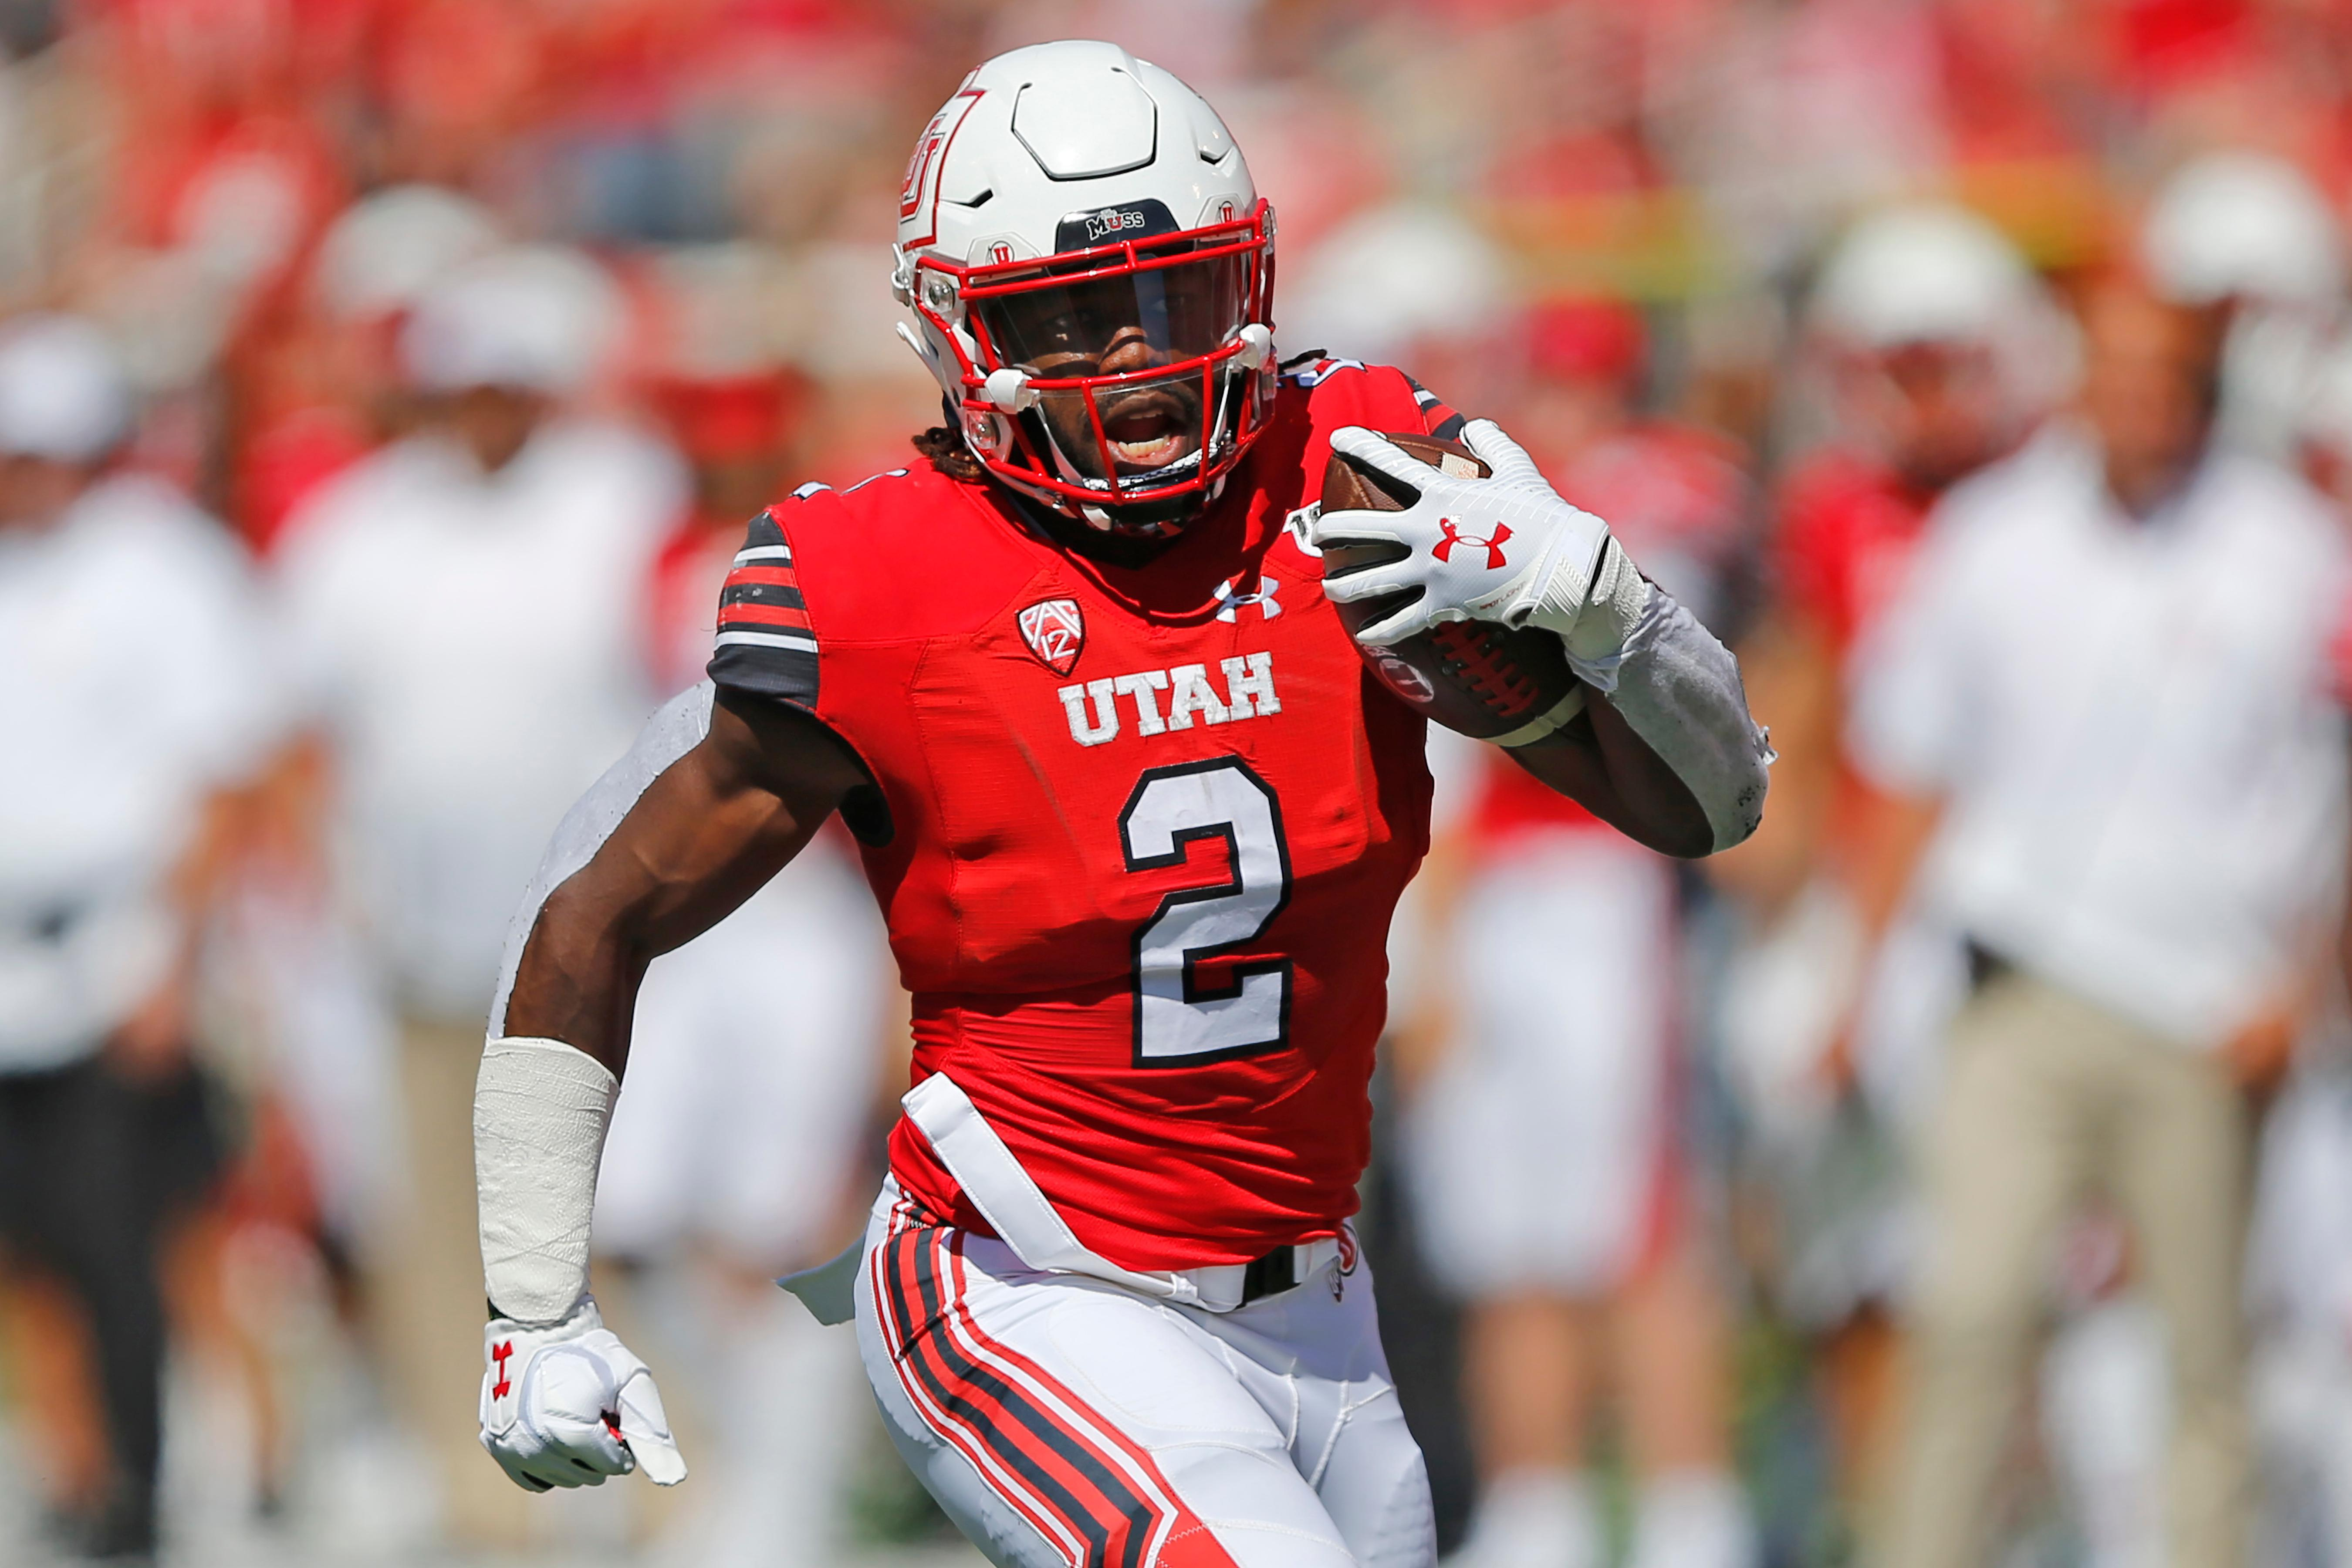 FILE - In this Sept. 14, 2019, file photo, Utah running back Zack Moss (2) carries the ball against Idaho State in the first half of an NCAA college football game, in Salt Lake City. (AP Photo/Rick Bowmer, File)